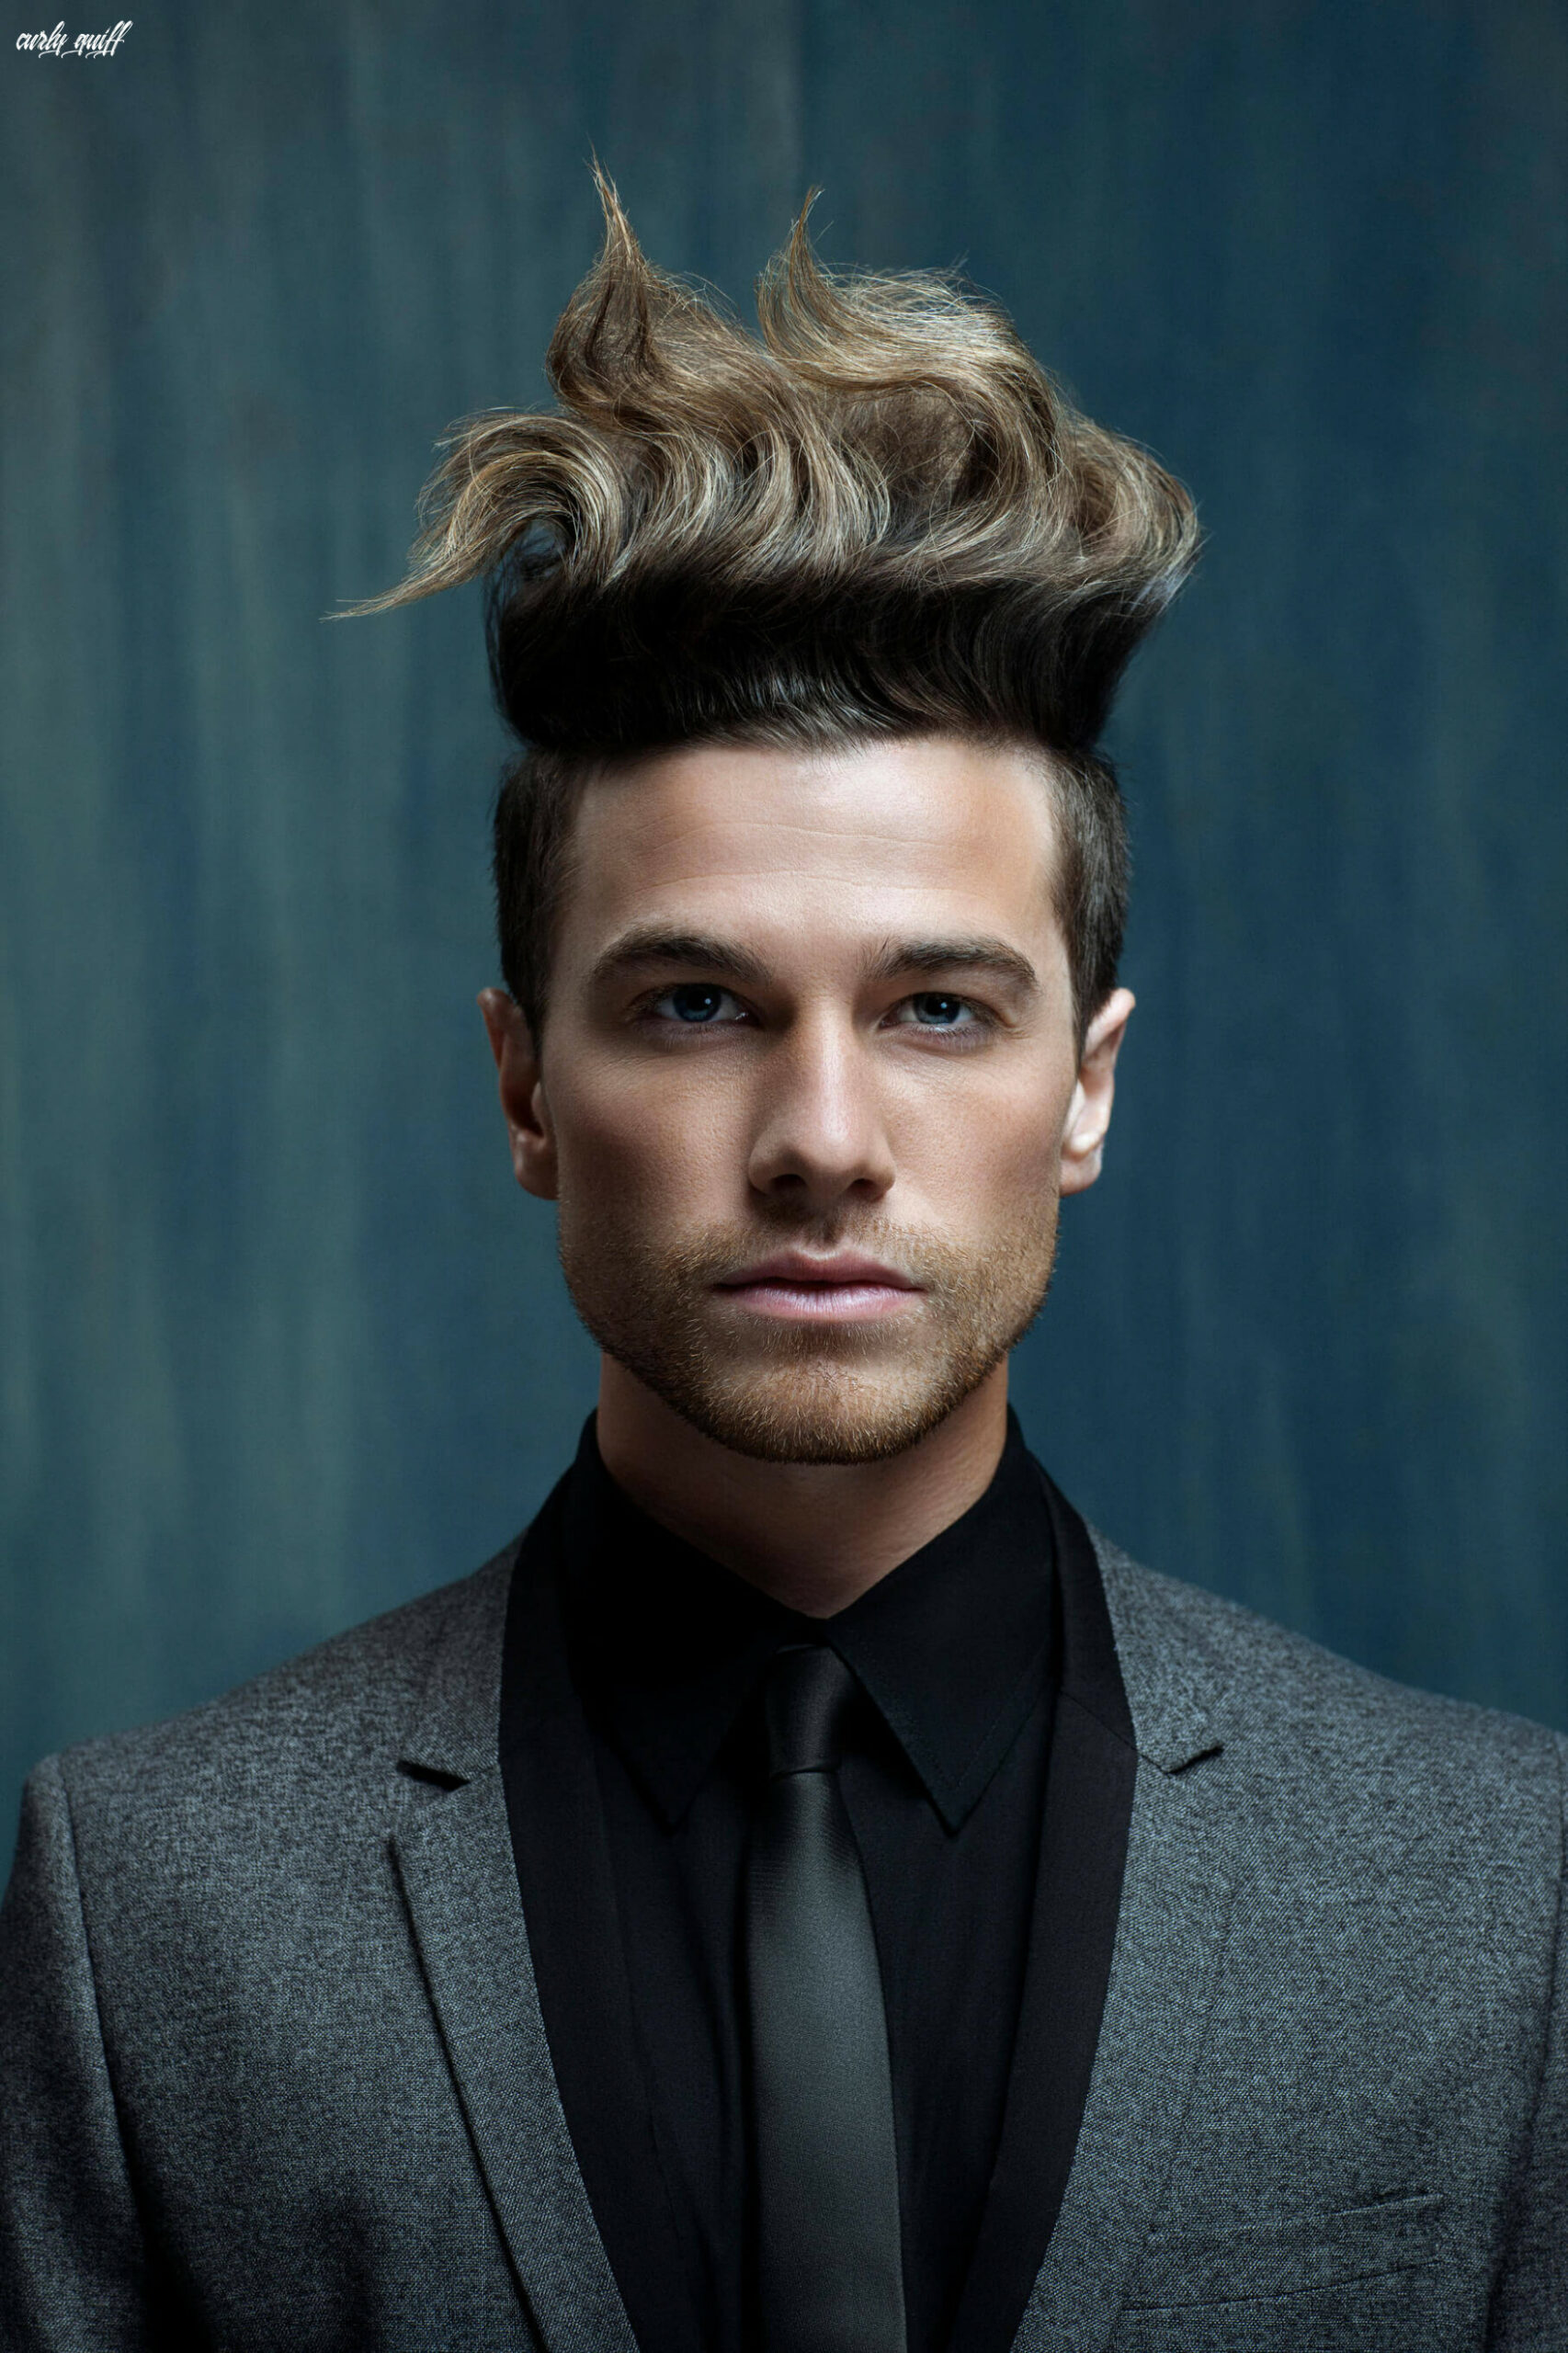 Wavy Quiff for Men: How to Style this Non-Boring Holiday Hairstyle